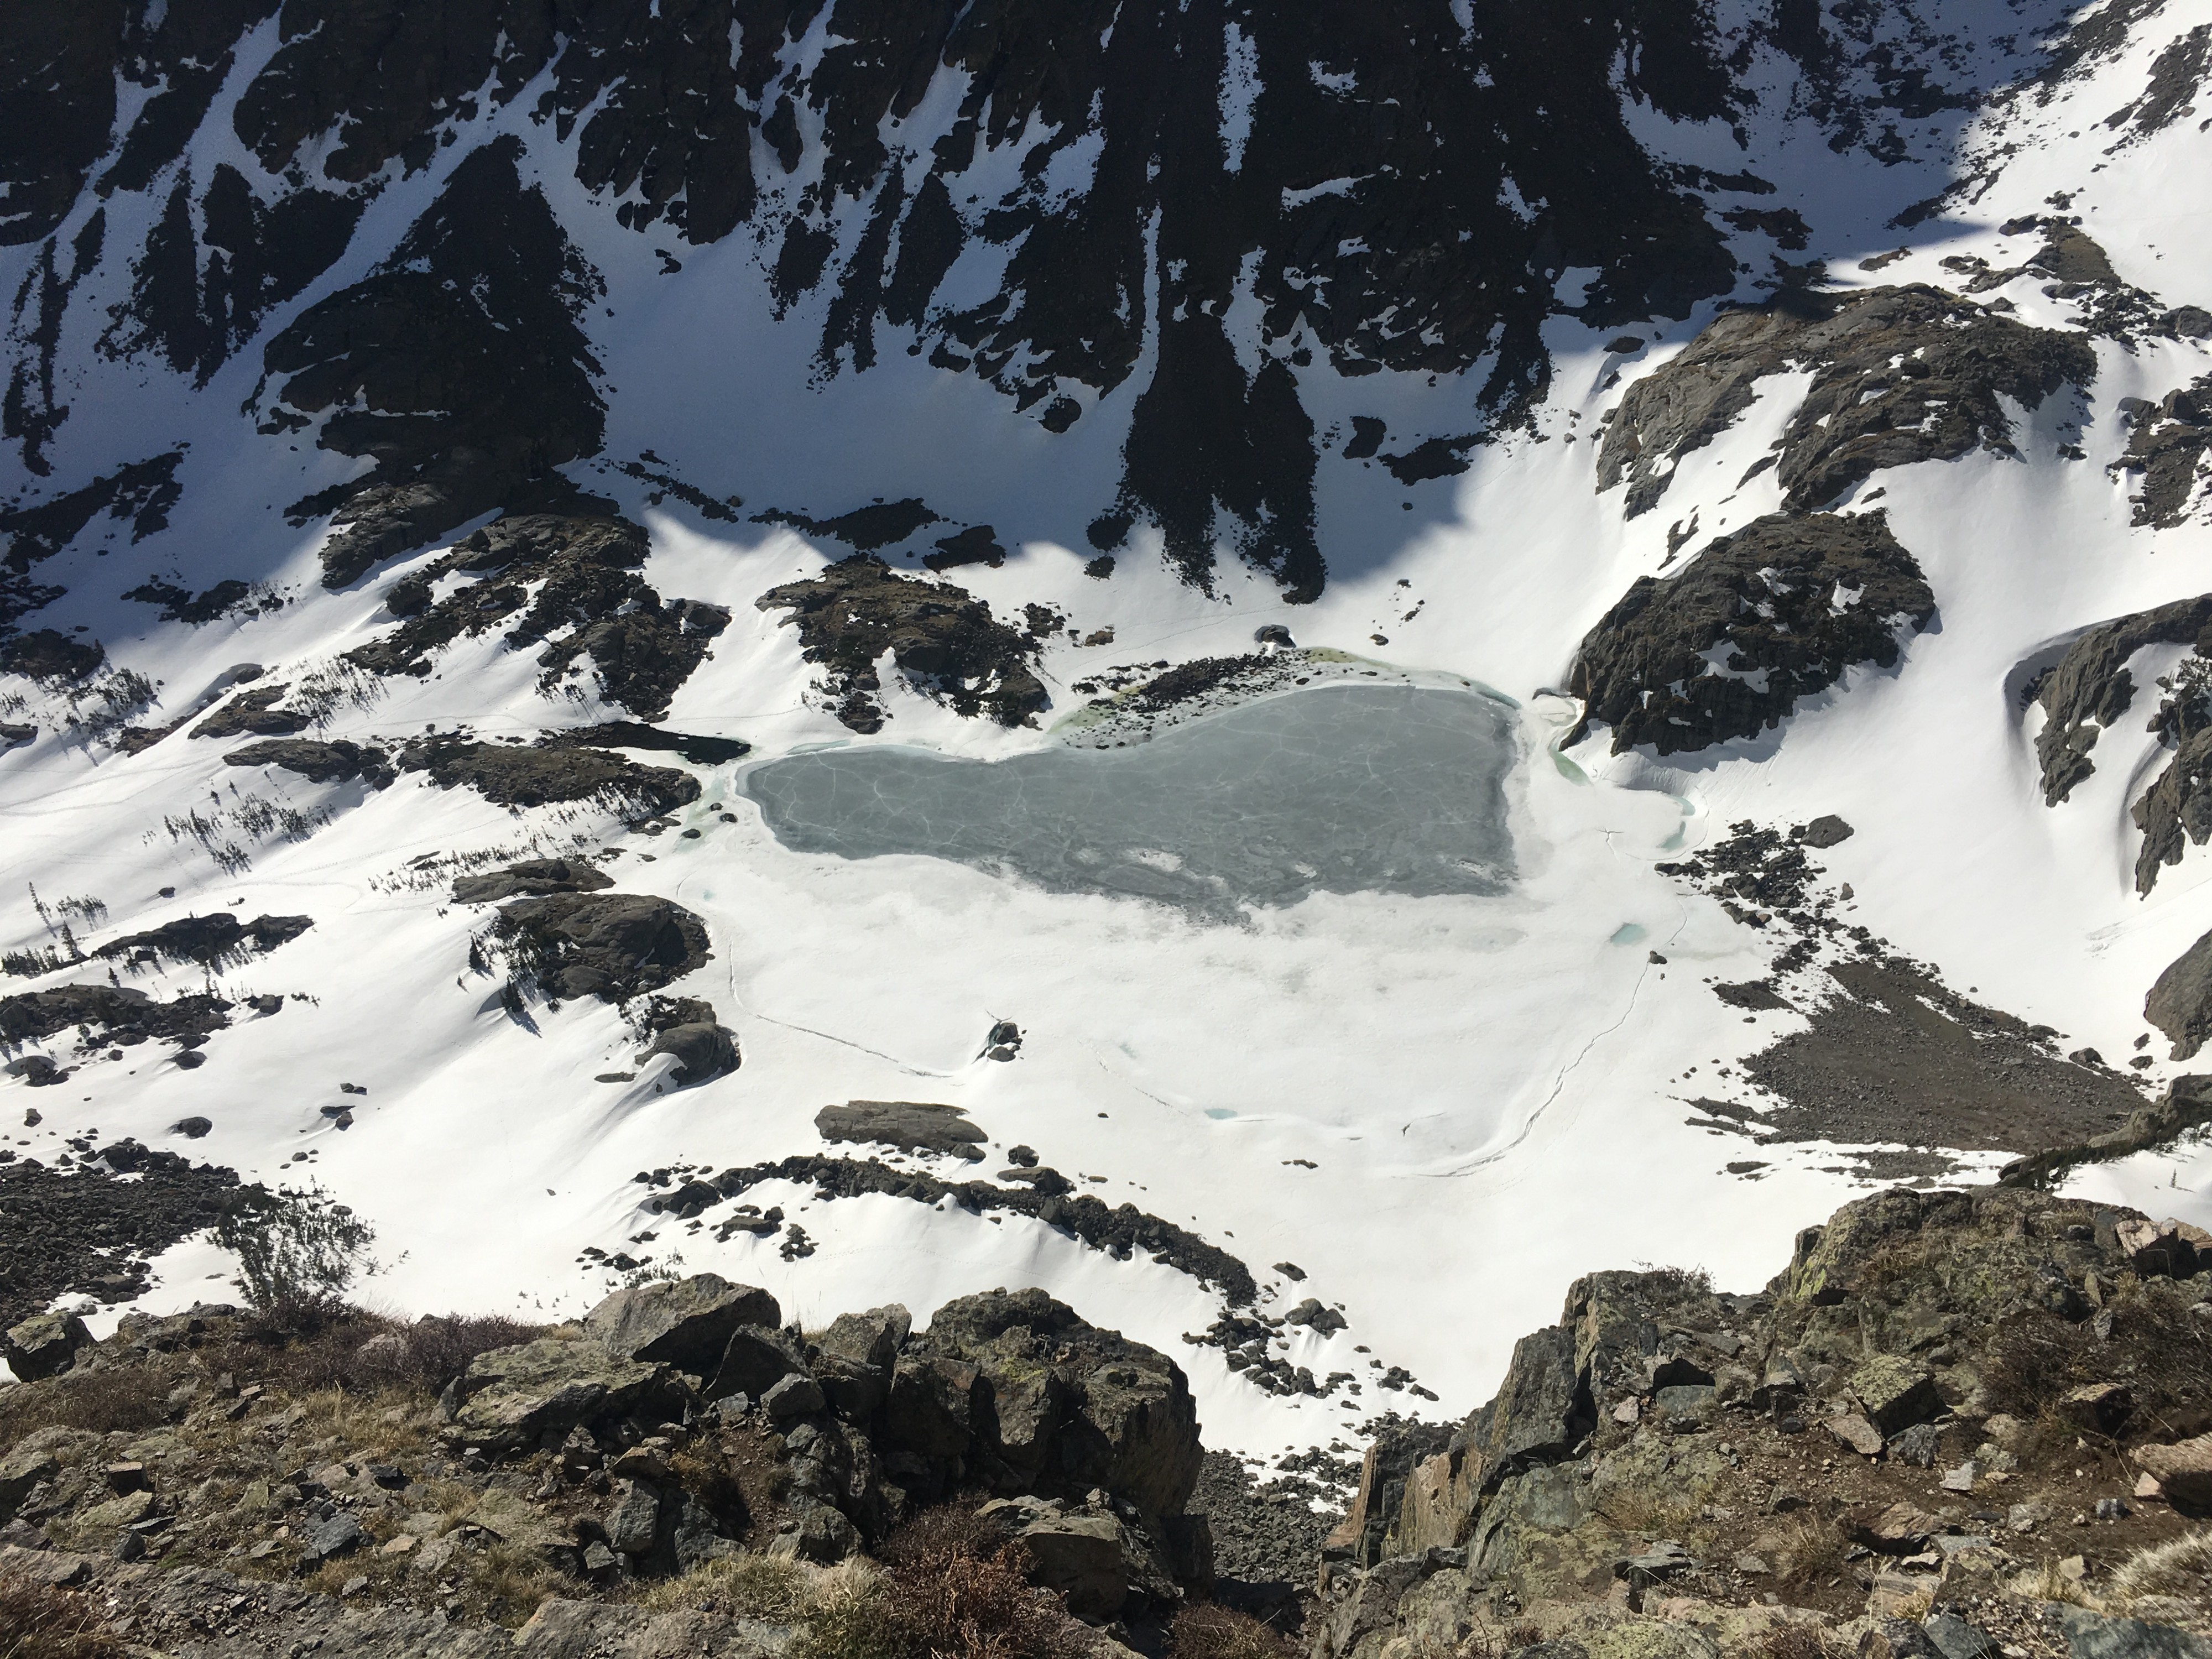 Sky Pond Cirque Rocky Mountain National Park Frozen in June from photographed from the Petit Grepon